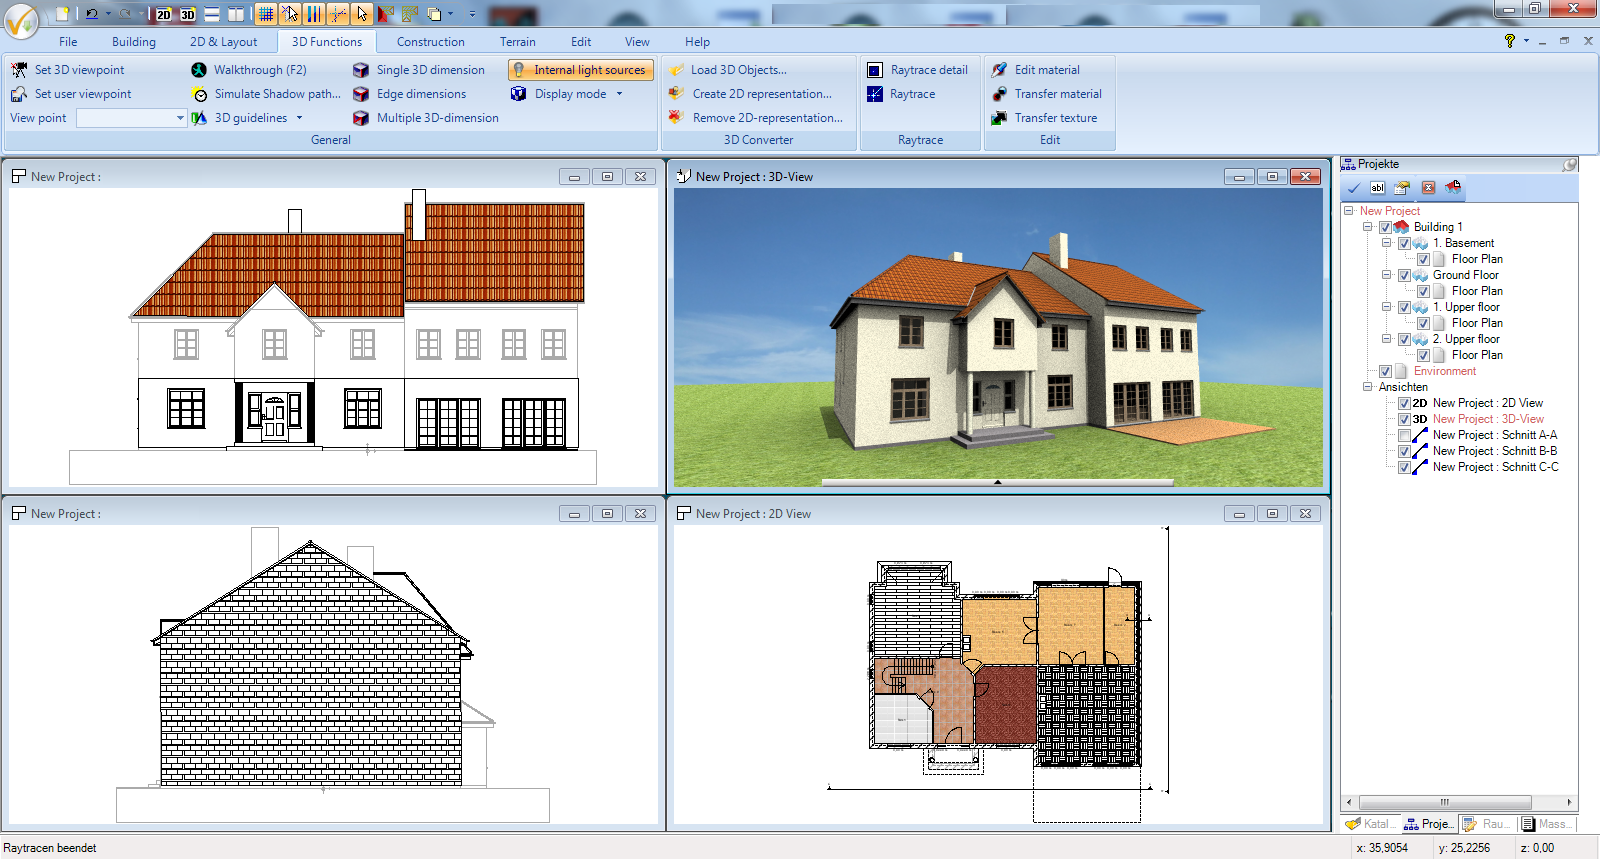 architect 32d Architect Software Free Download